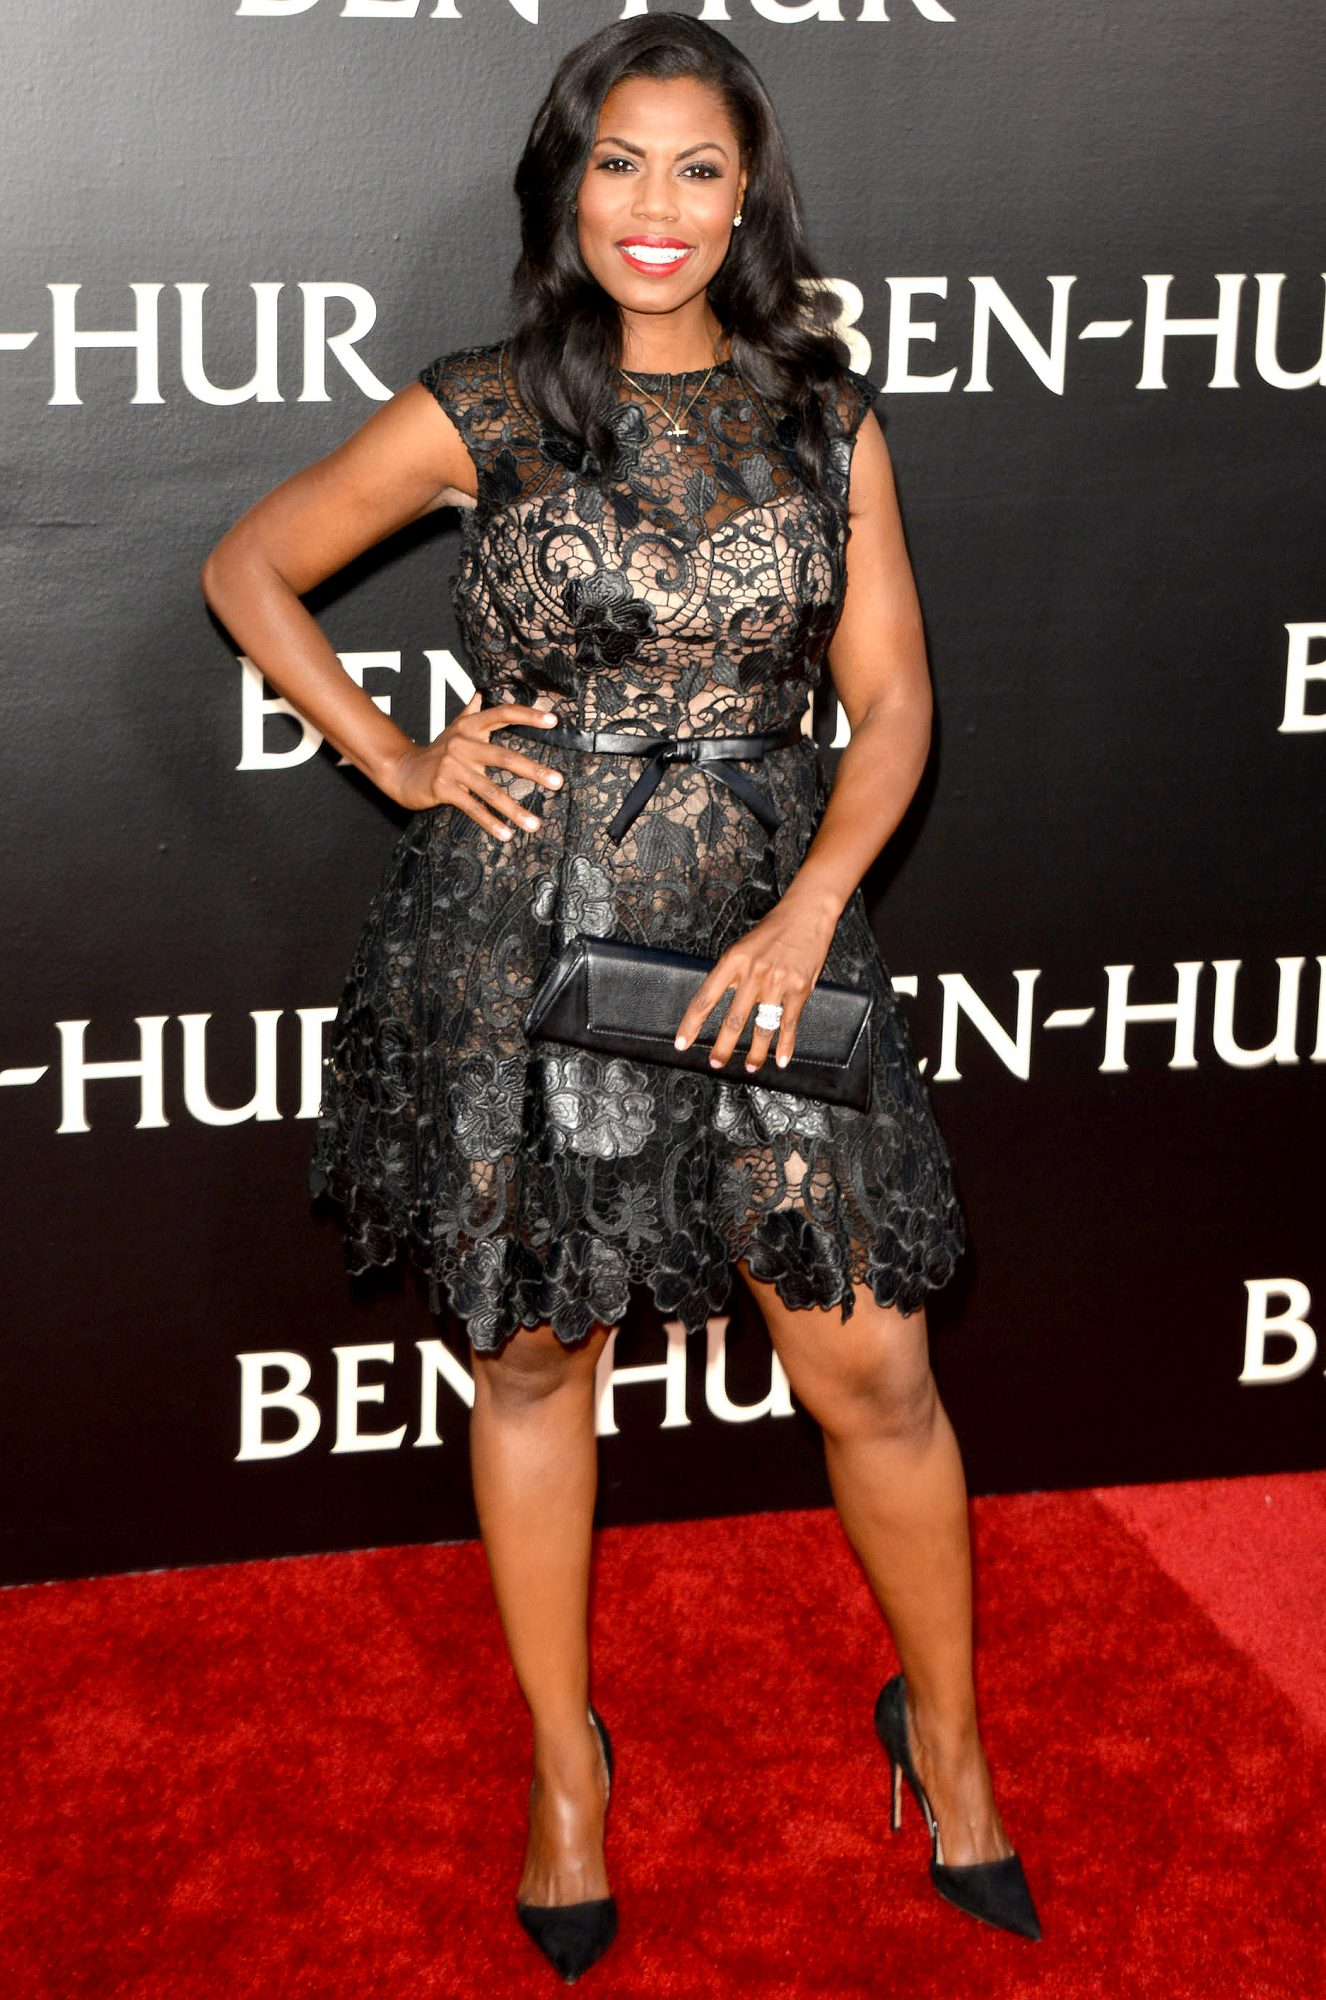 Los Angeles Premiere of Ben-Hur